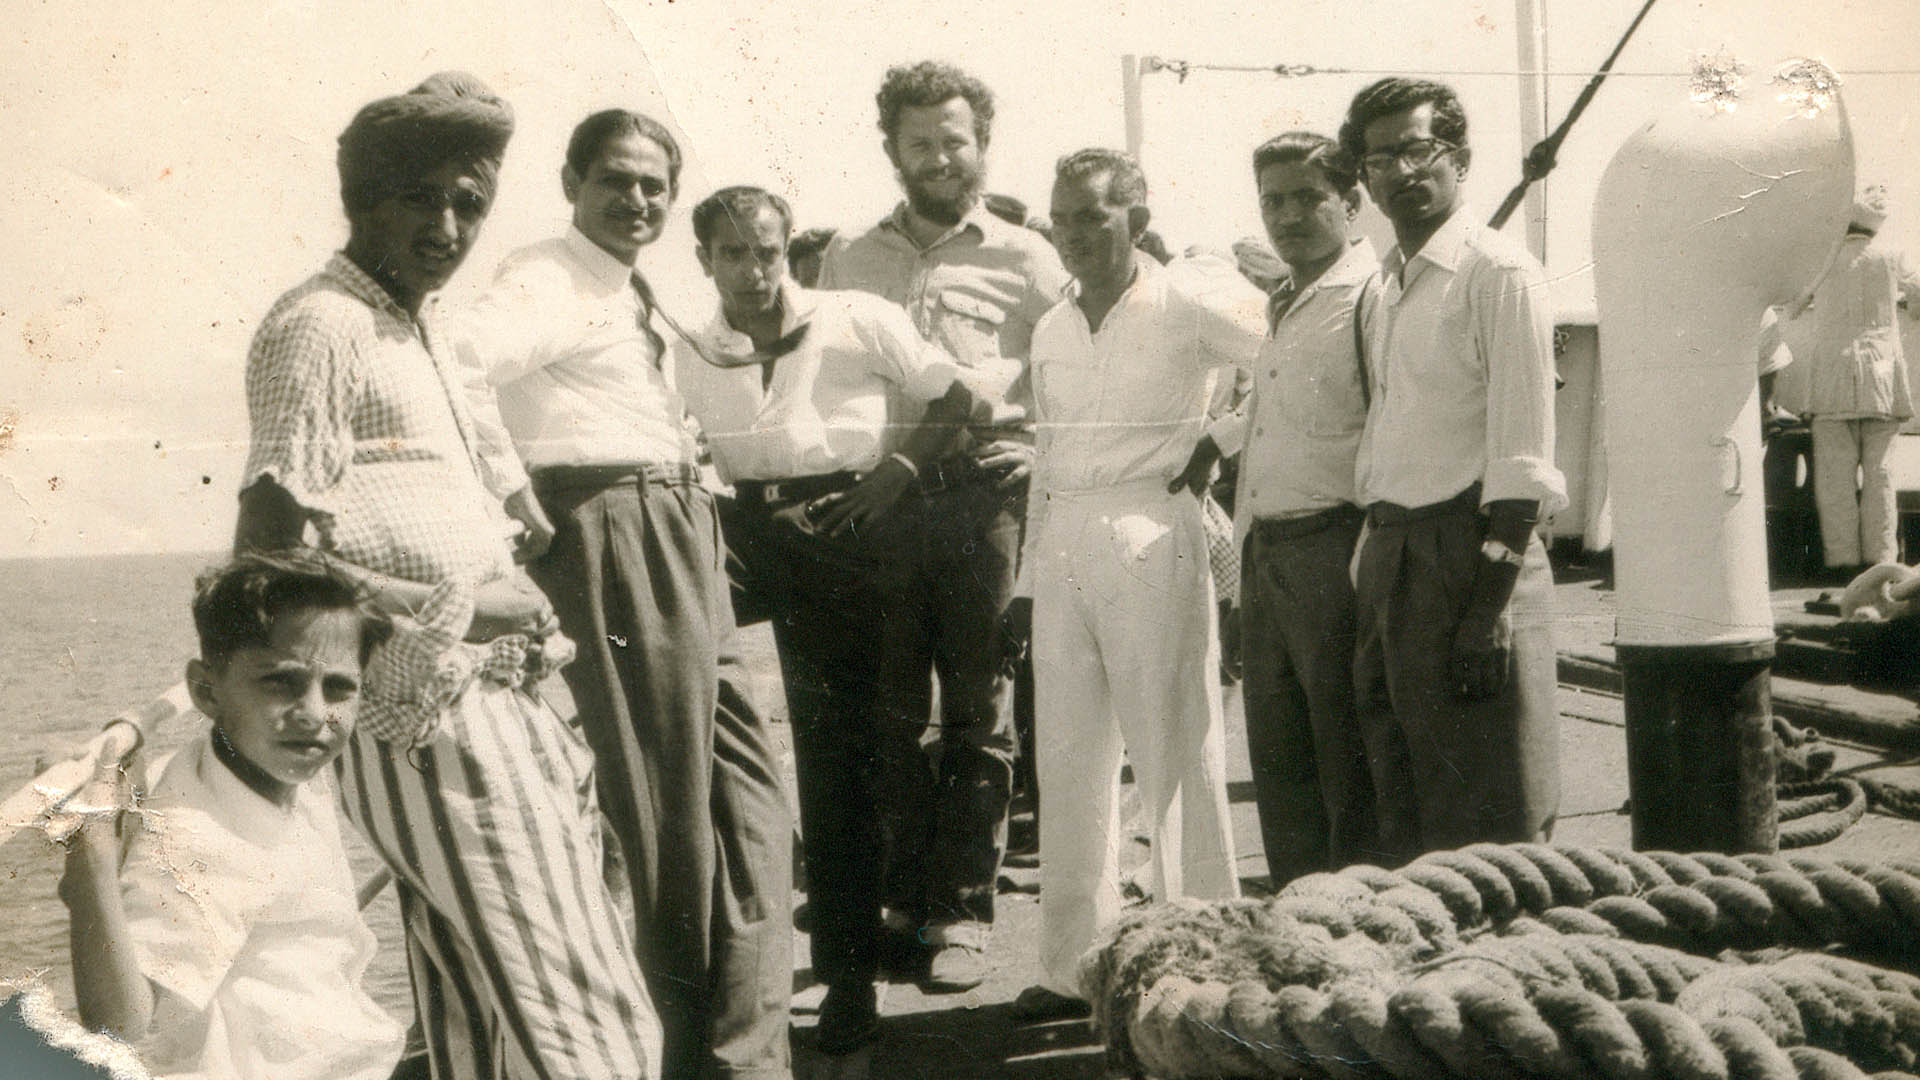 Alfred on ship with Indian men copy.jpg